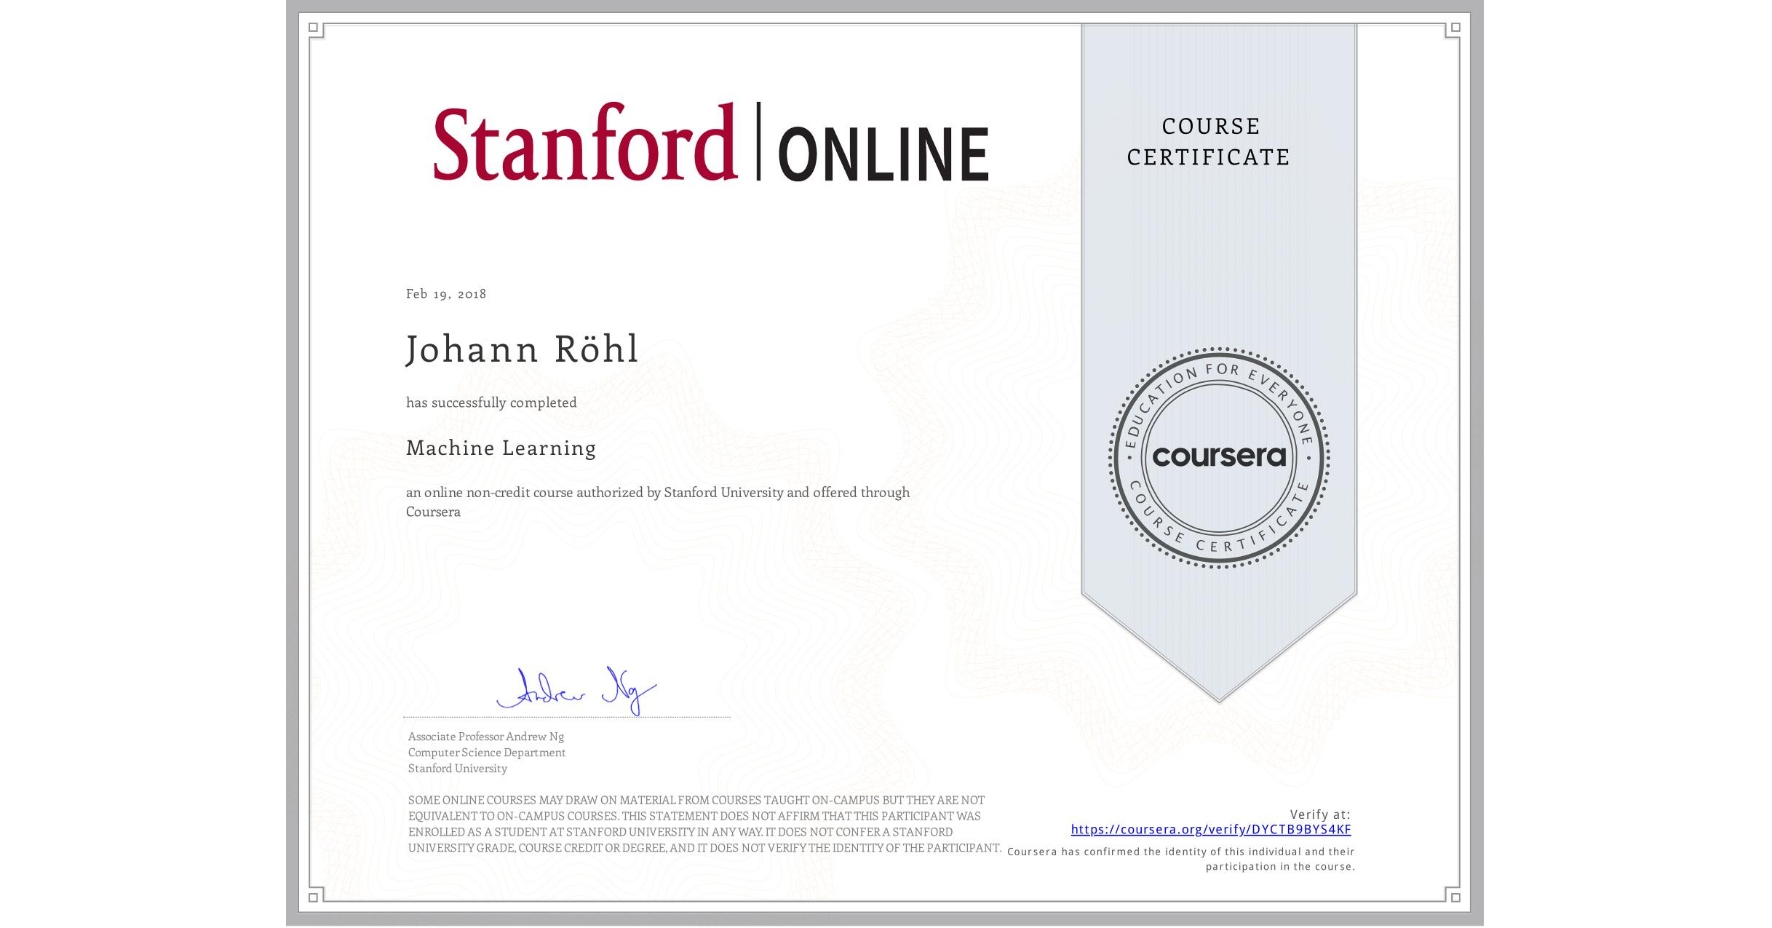 View certificate for Johann Röhl, Machine Learning, an online non-credit course authorized by Stanford University and offered through Coursera